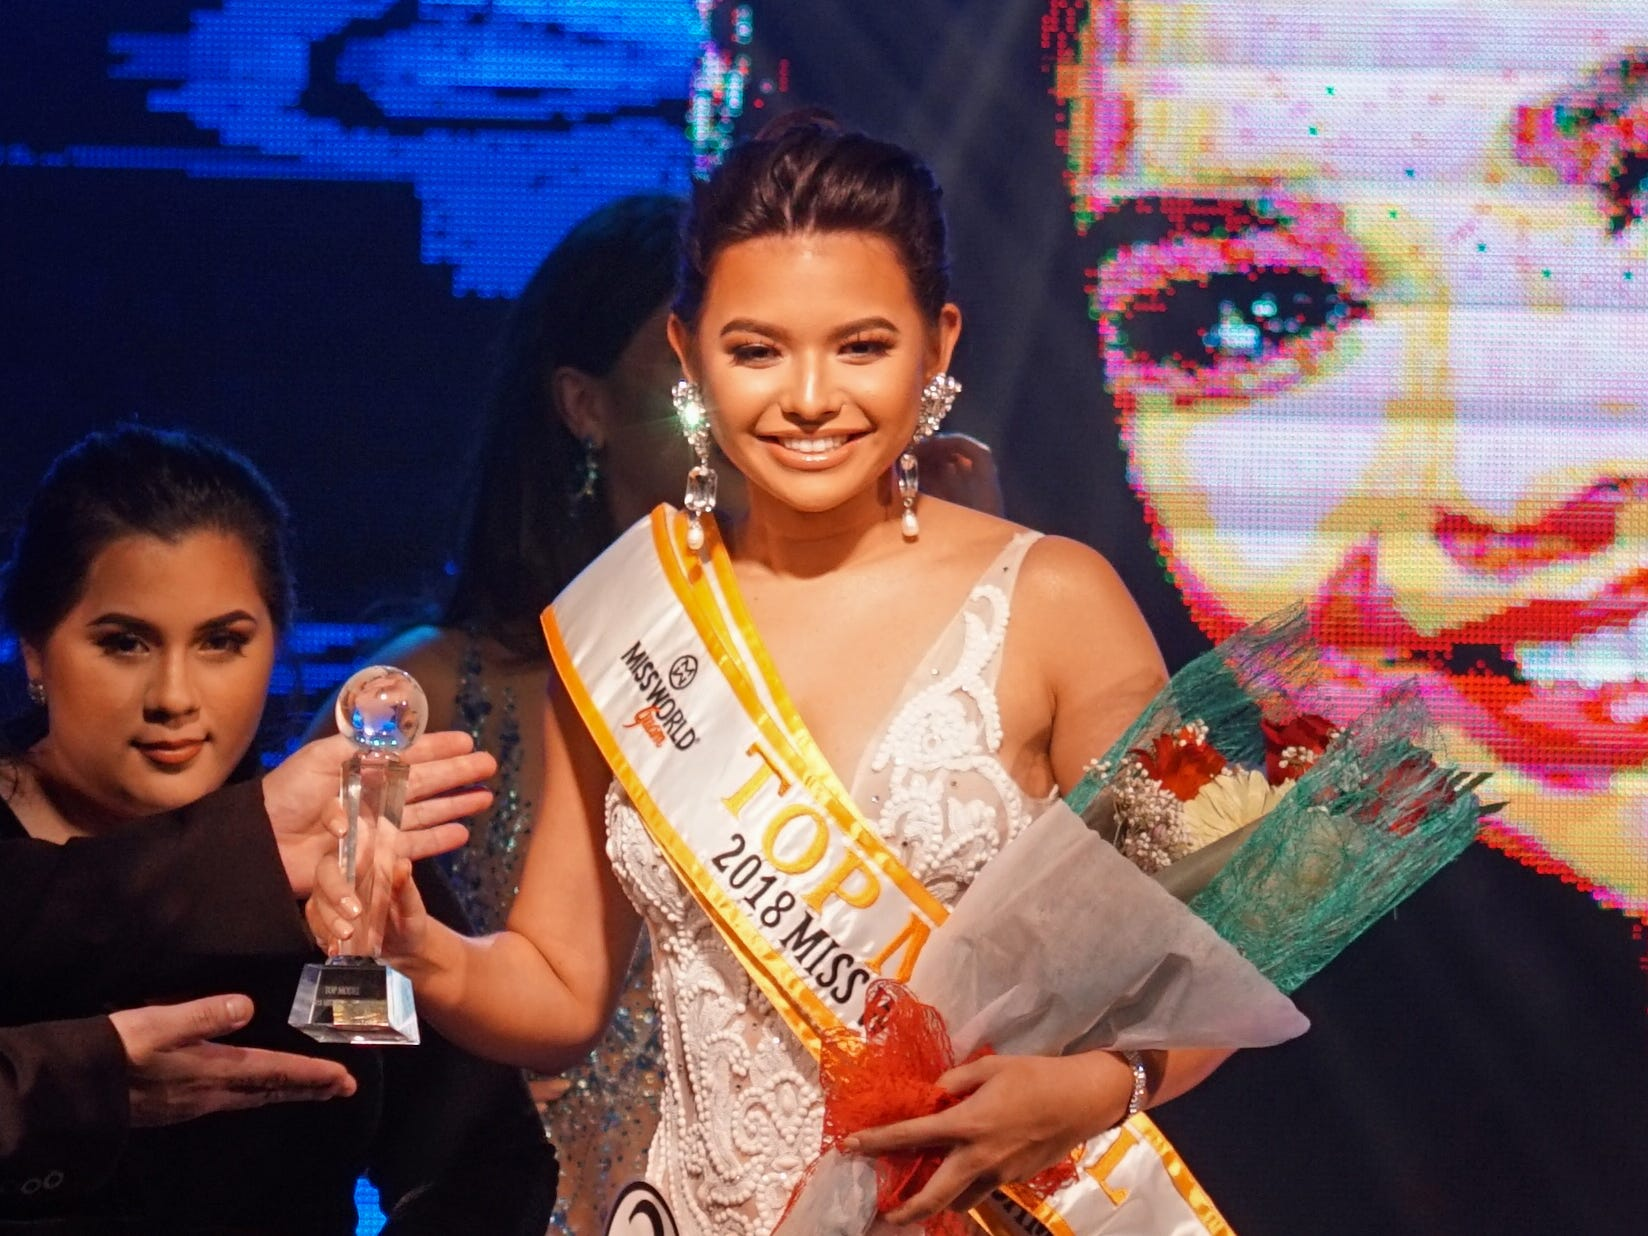 Contestant #2 Gianna Camacho Sgambelluri, 18, from Barrigada, wins the Top Model category at the 2018 Miss World Guam pageant held at Sheraton Laguna Guam Resort.